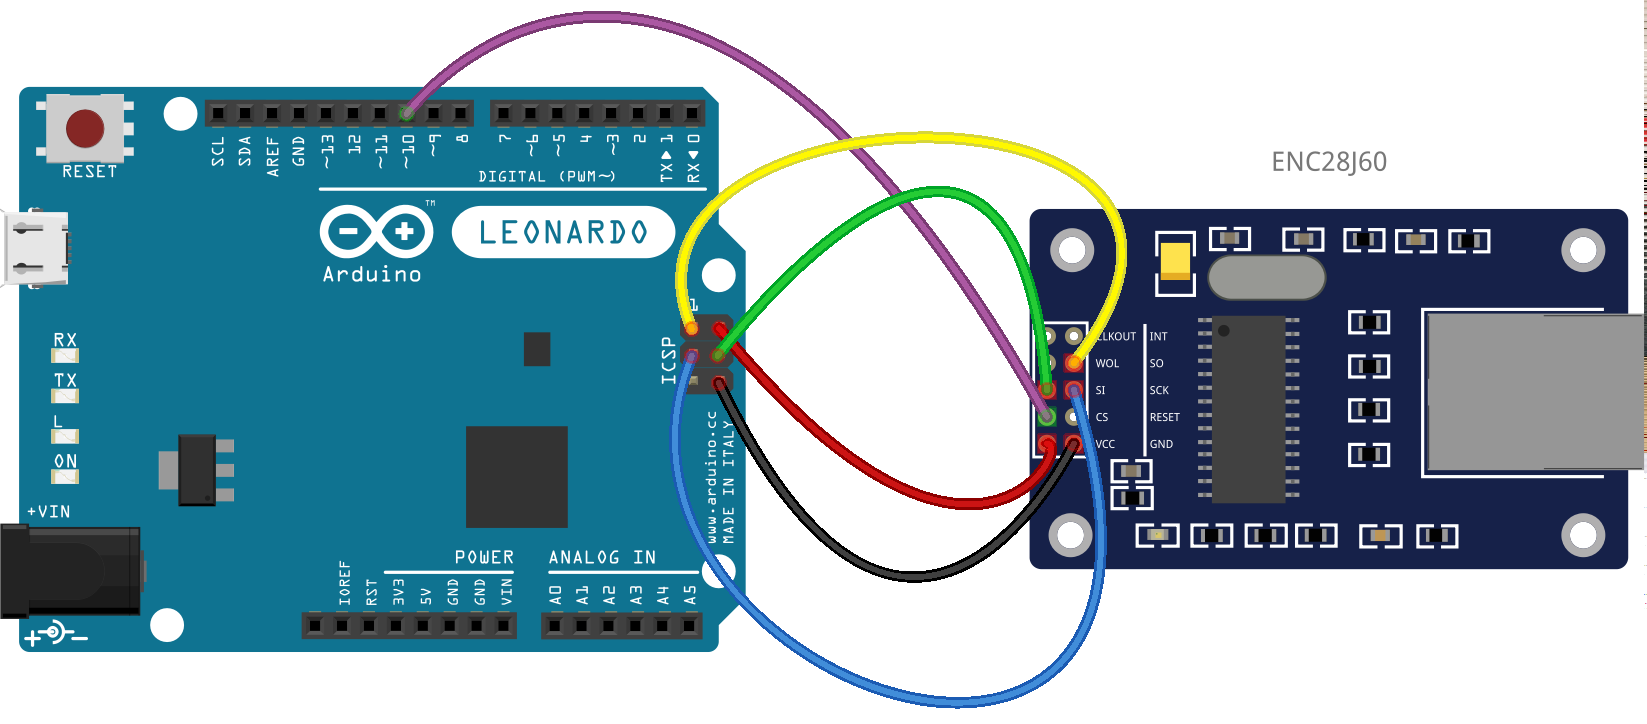 Arduino Leonardo And Spi Communications Moreover Ether Switch Wiring Diagram On Serial Cable Here Is The Enc28j60